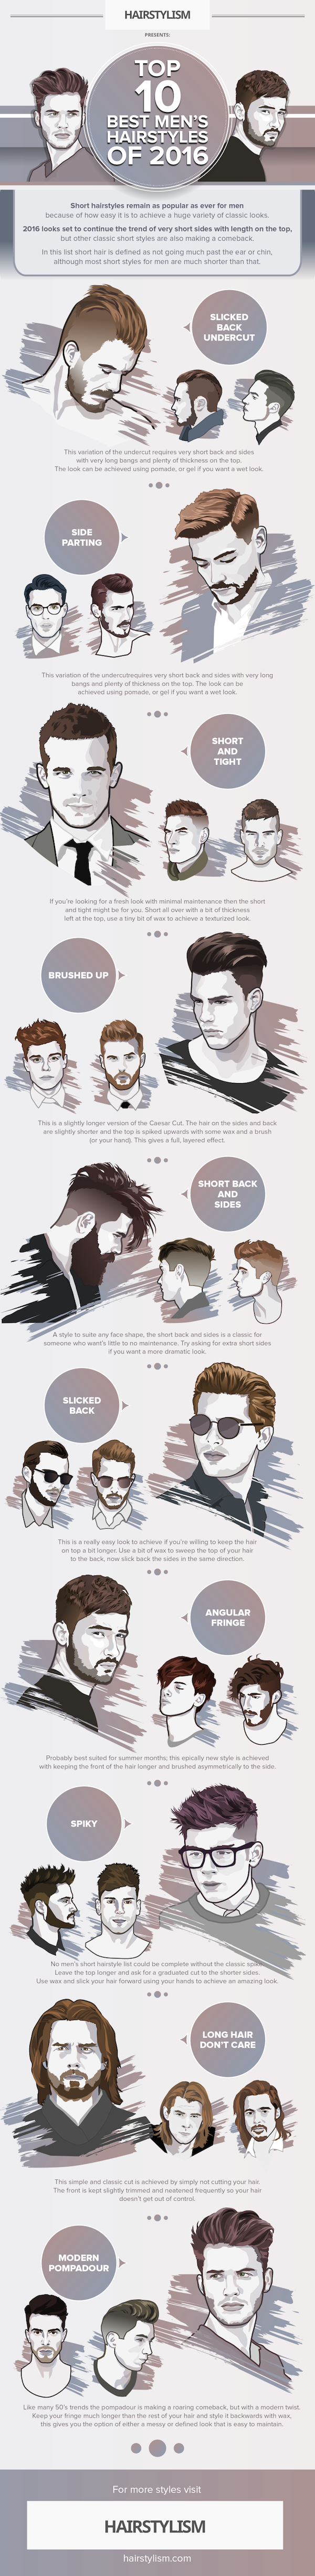 The Fade The Trendiest Hairstyle For Men Right Now  Trendy